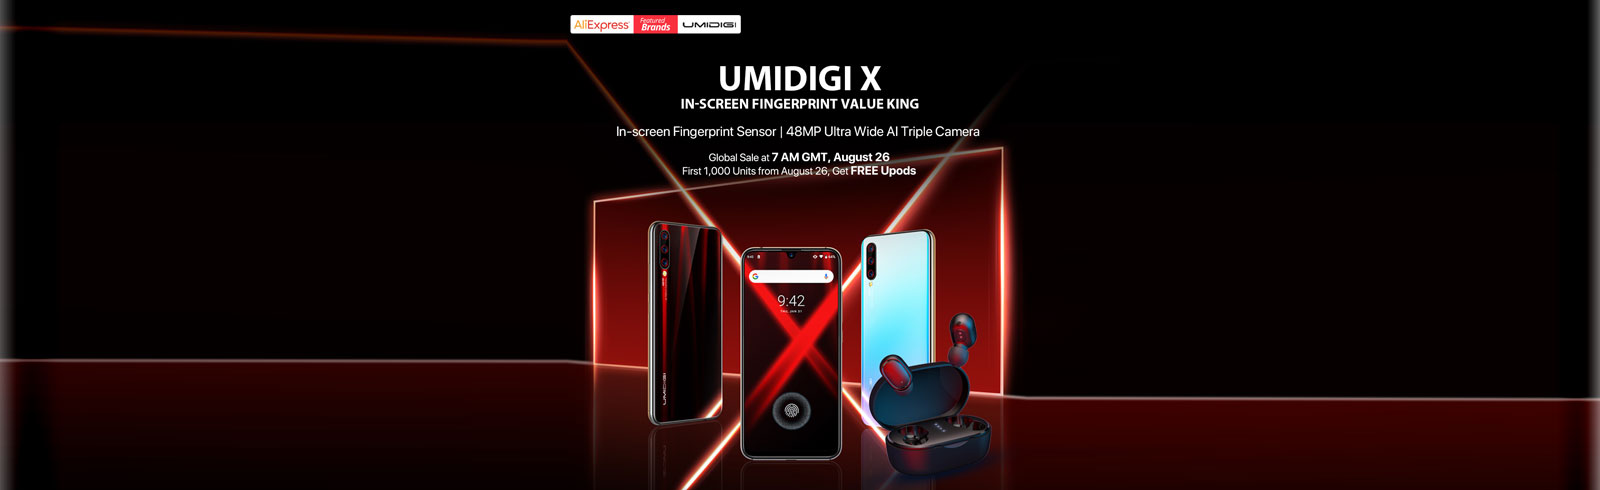 UMIDIGI X with an AMOLED display and UD fingerprint sensor is official